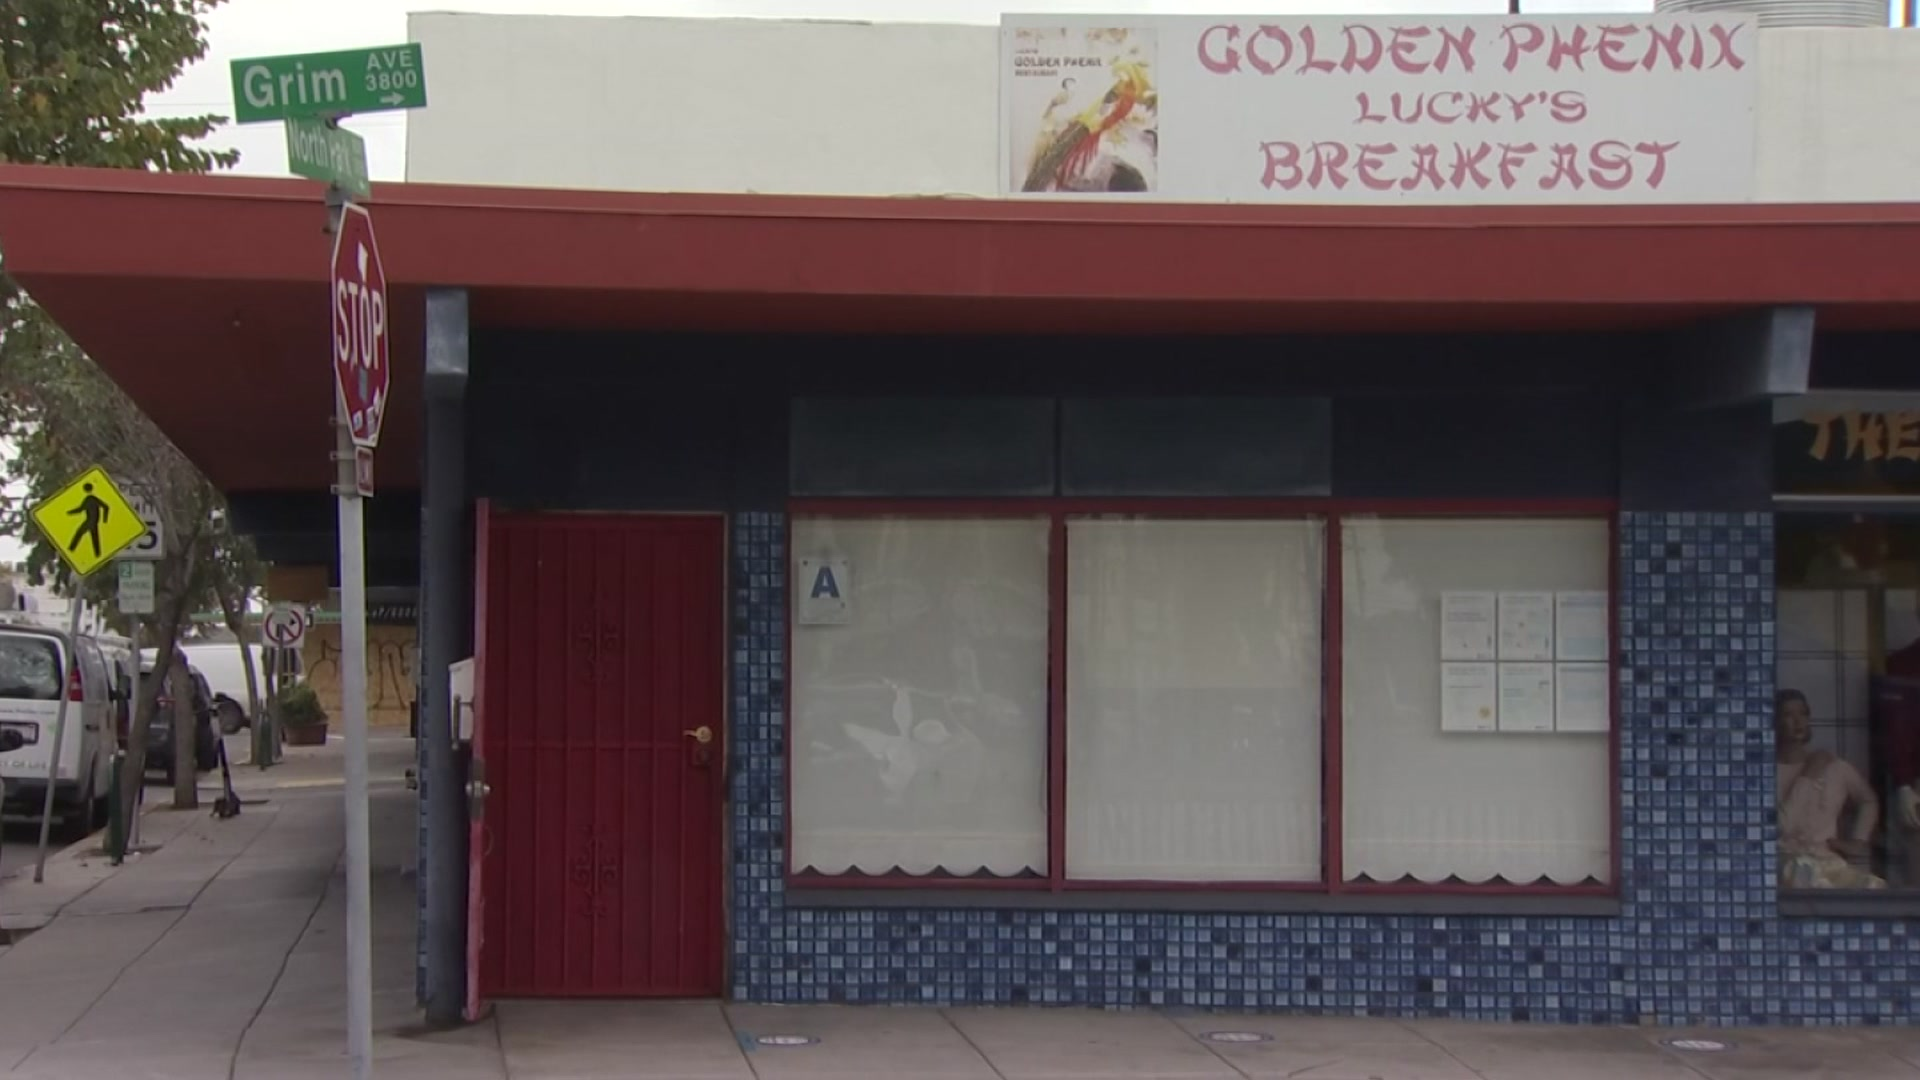 North Park Diner Owner Spreading Good Fortune to Unlucky Industry Workers